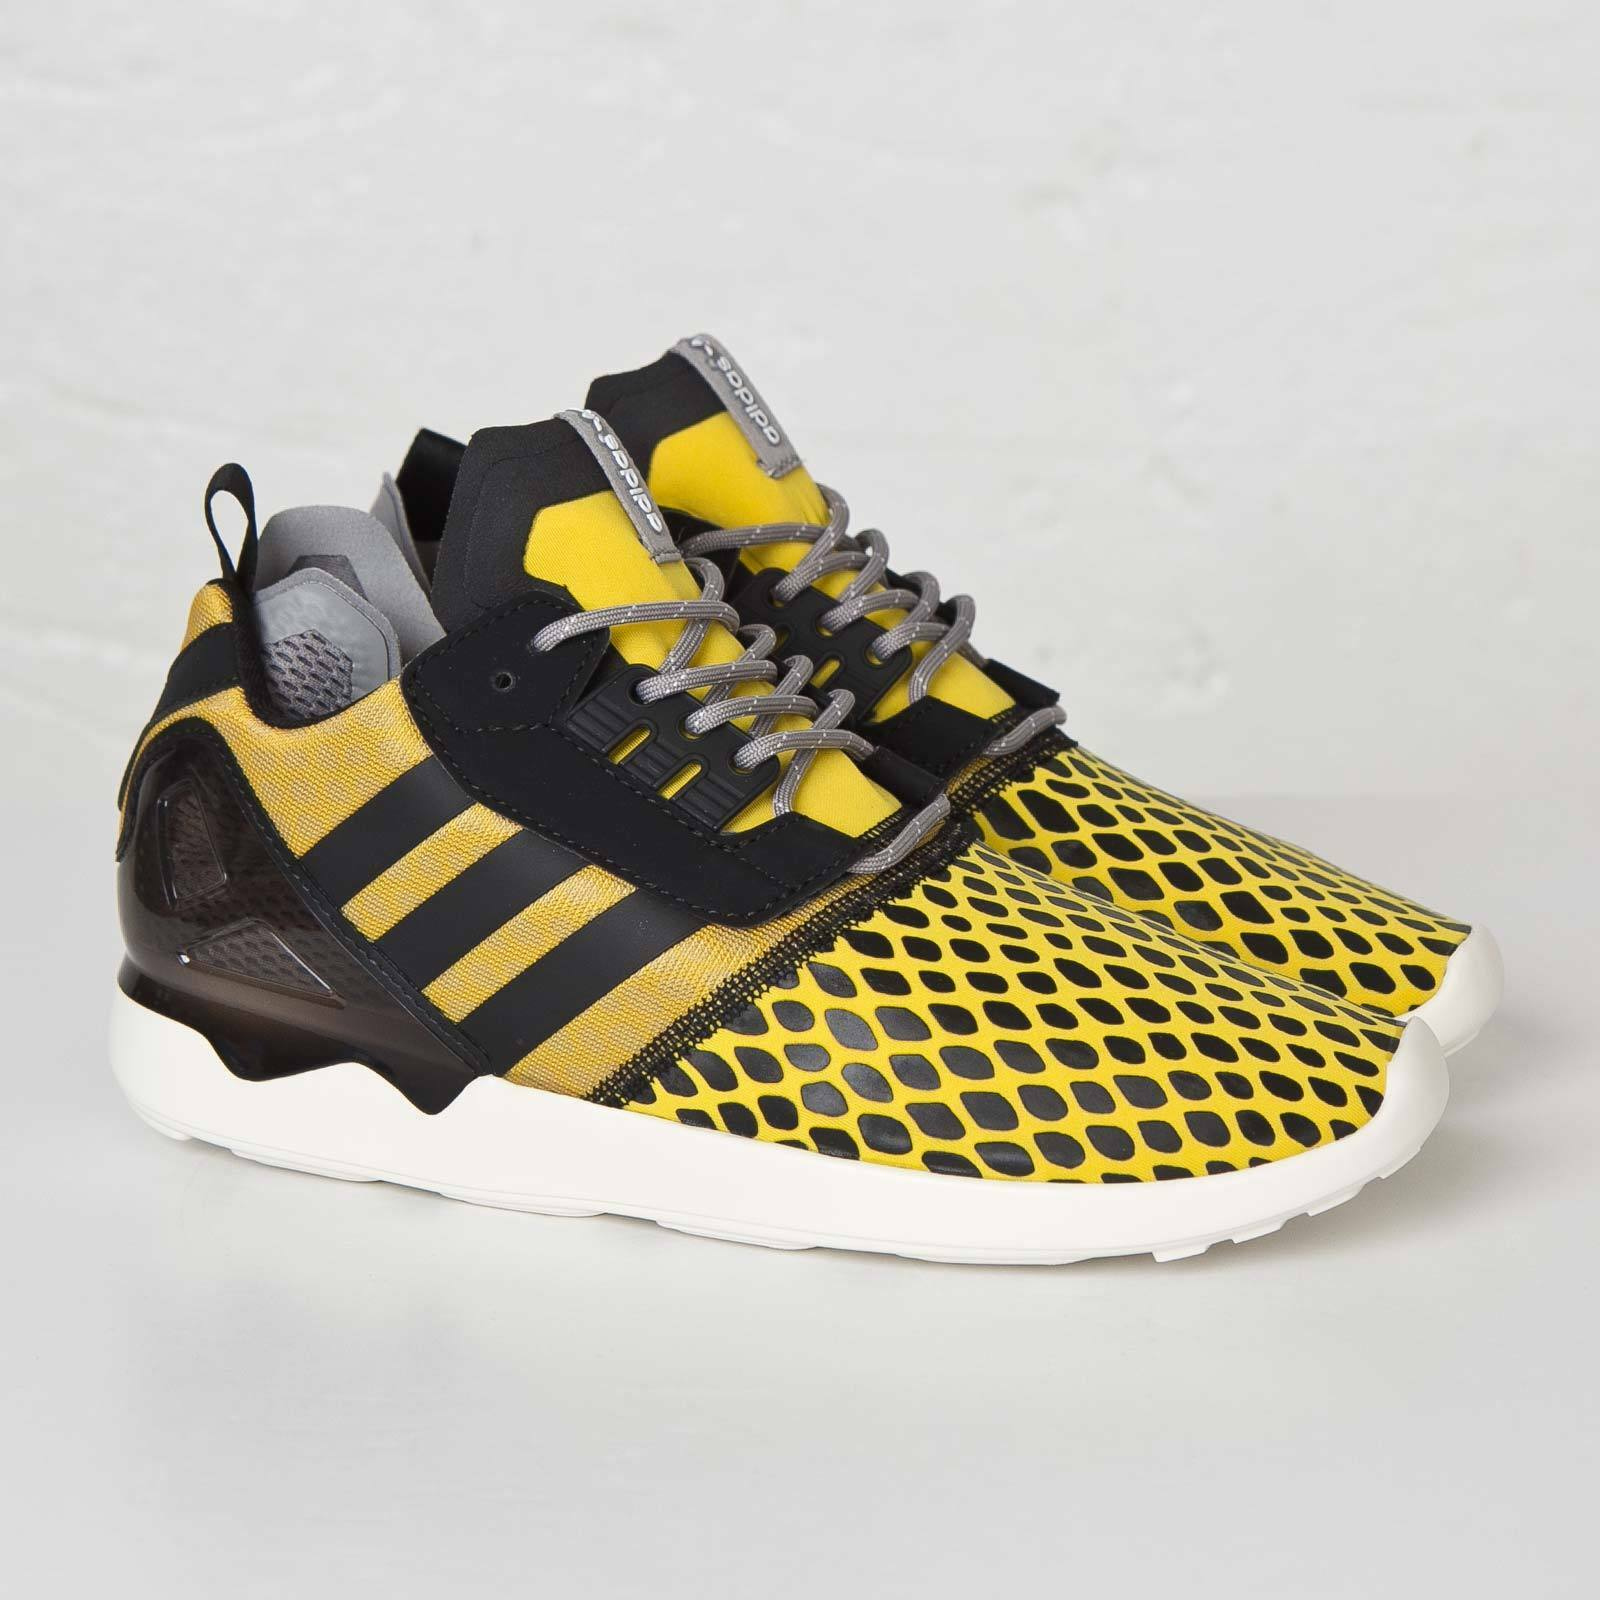 Adidas ZX Originals 8000 Boost (US 9.5) Originals ZX ADV nmd EQT 93/17 988635